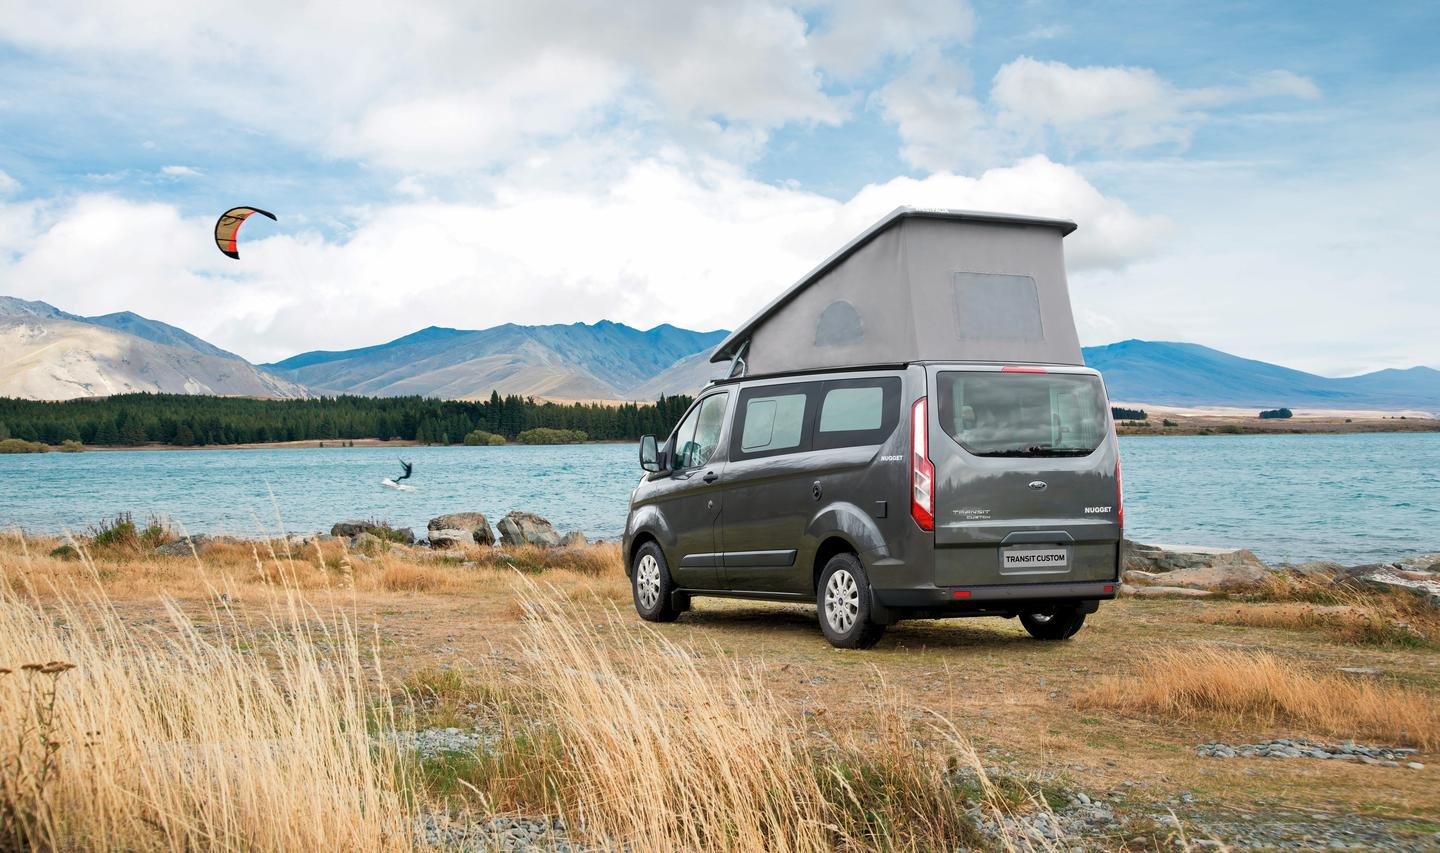 The Ford Nugget is small, but as Ford shows in its new video series, it can serve as a base camp for all kinds of adventure